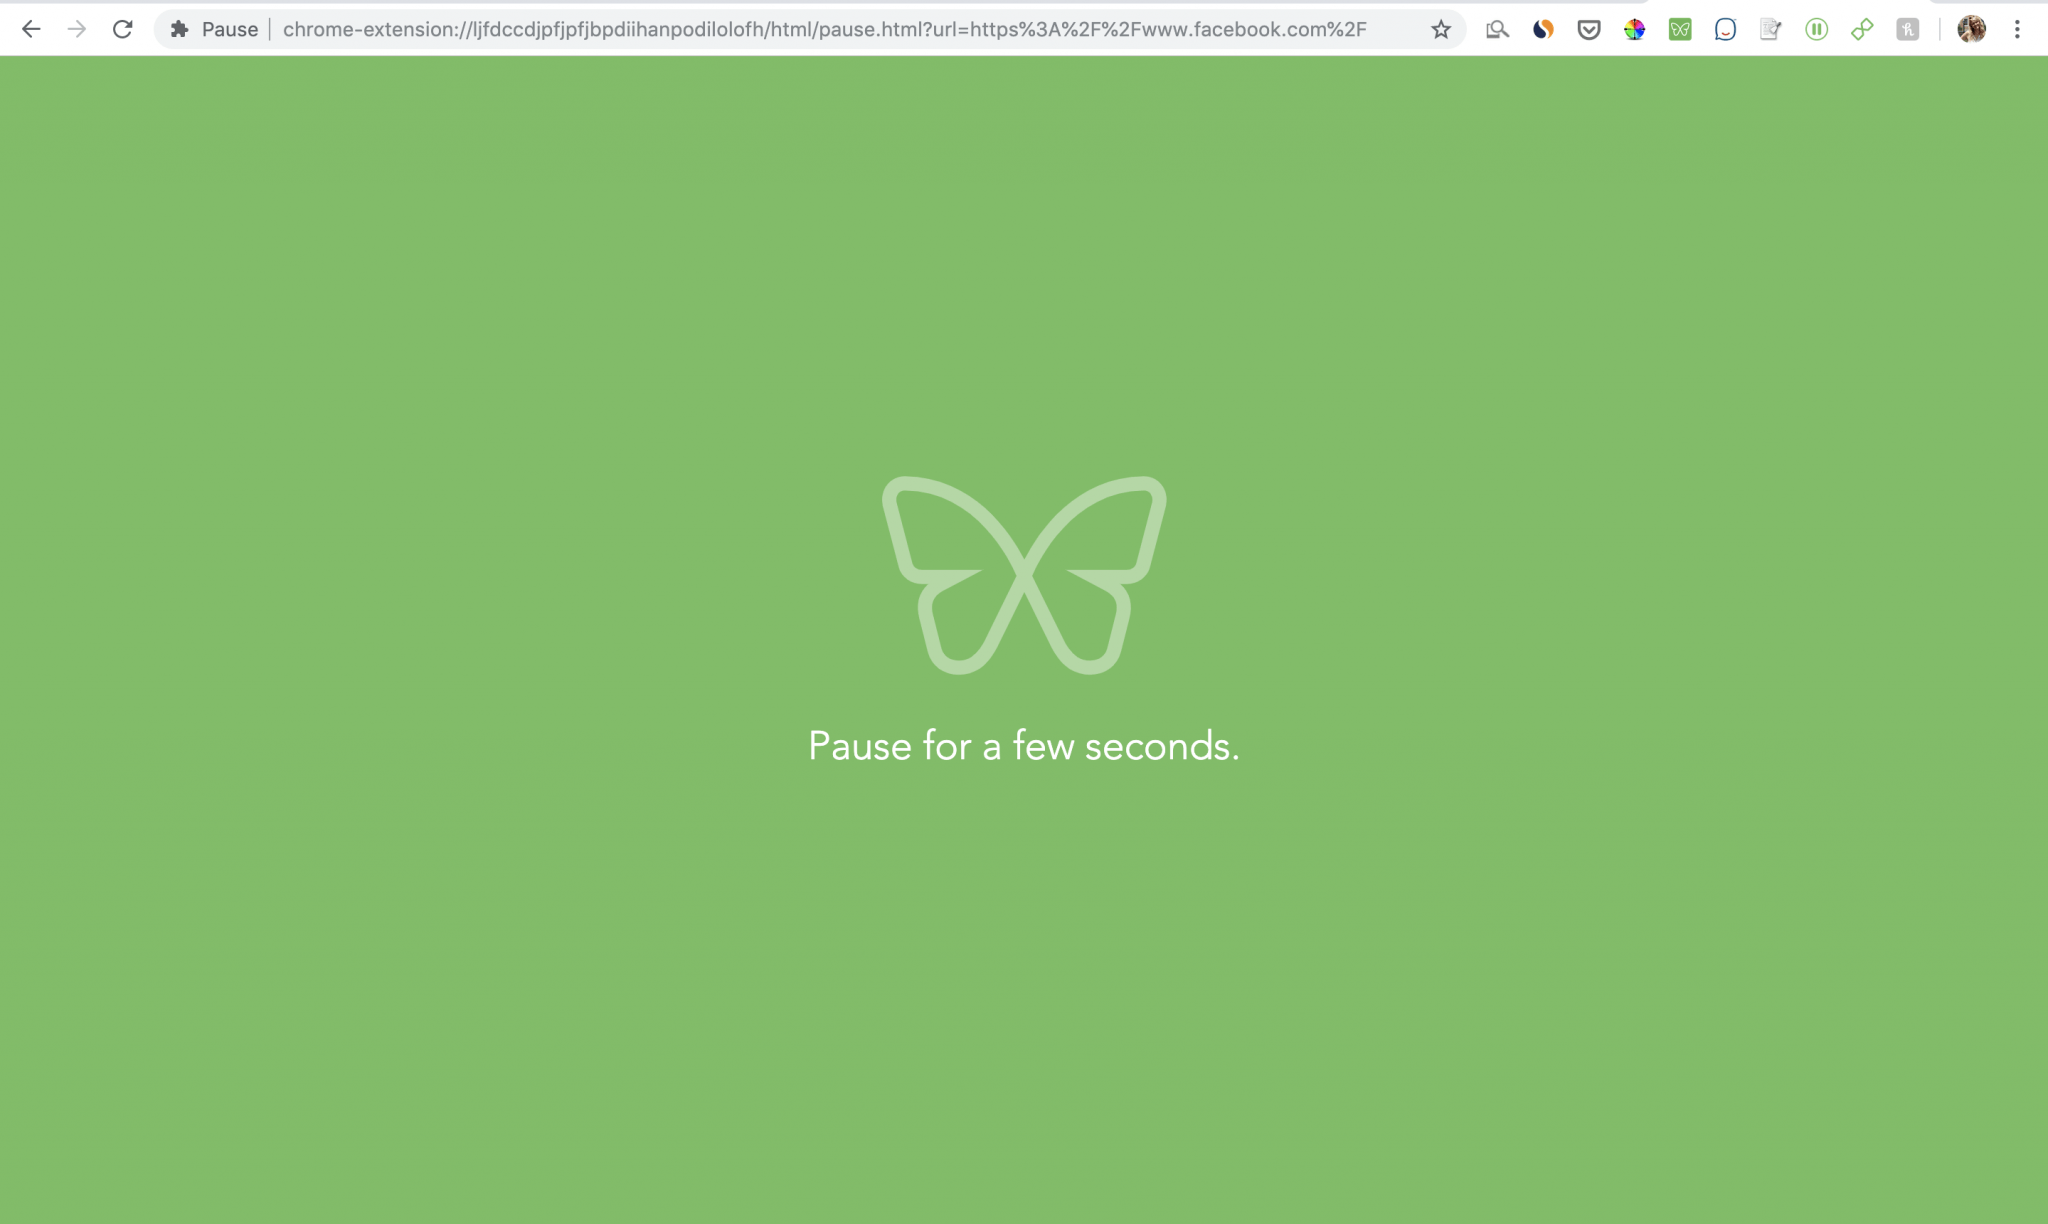 Pause helps you beat distraction with intentional browsing